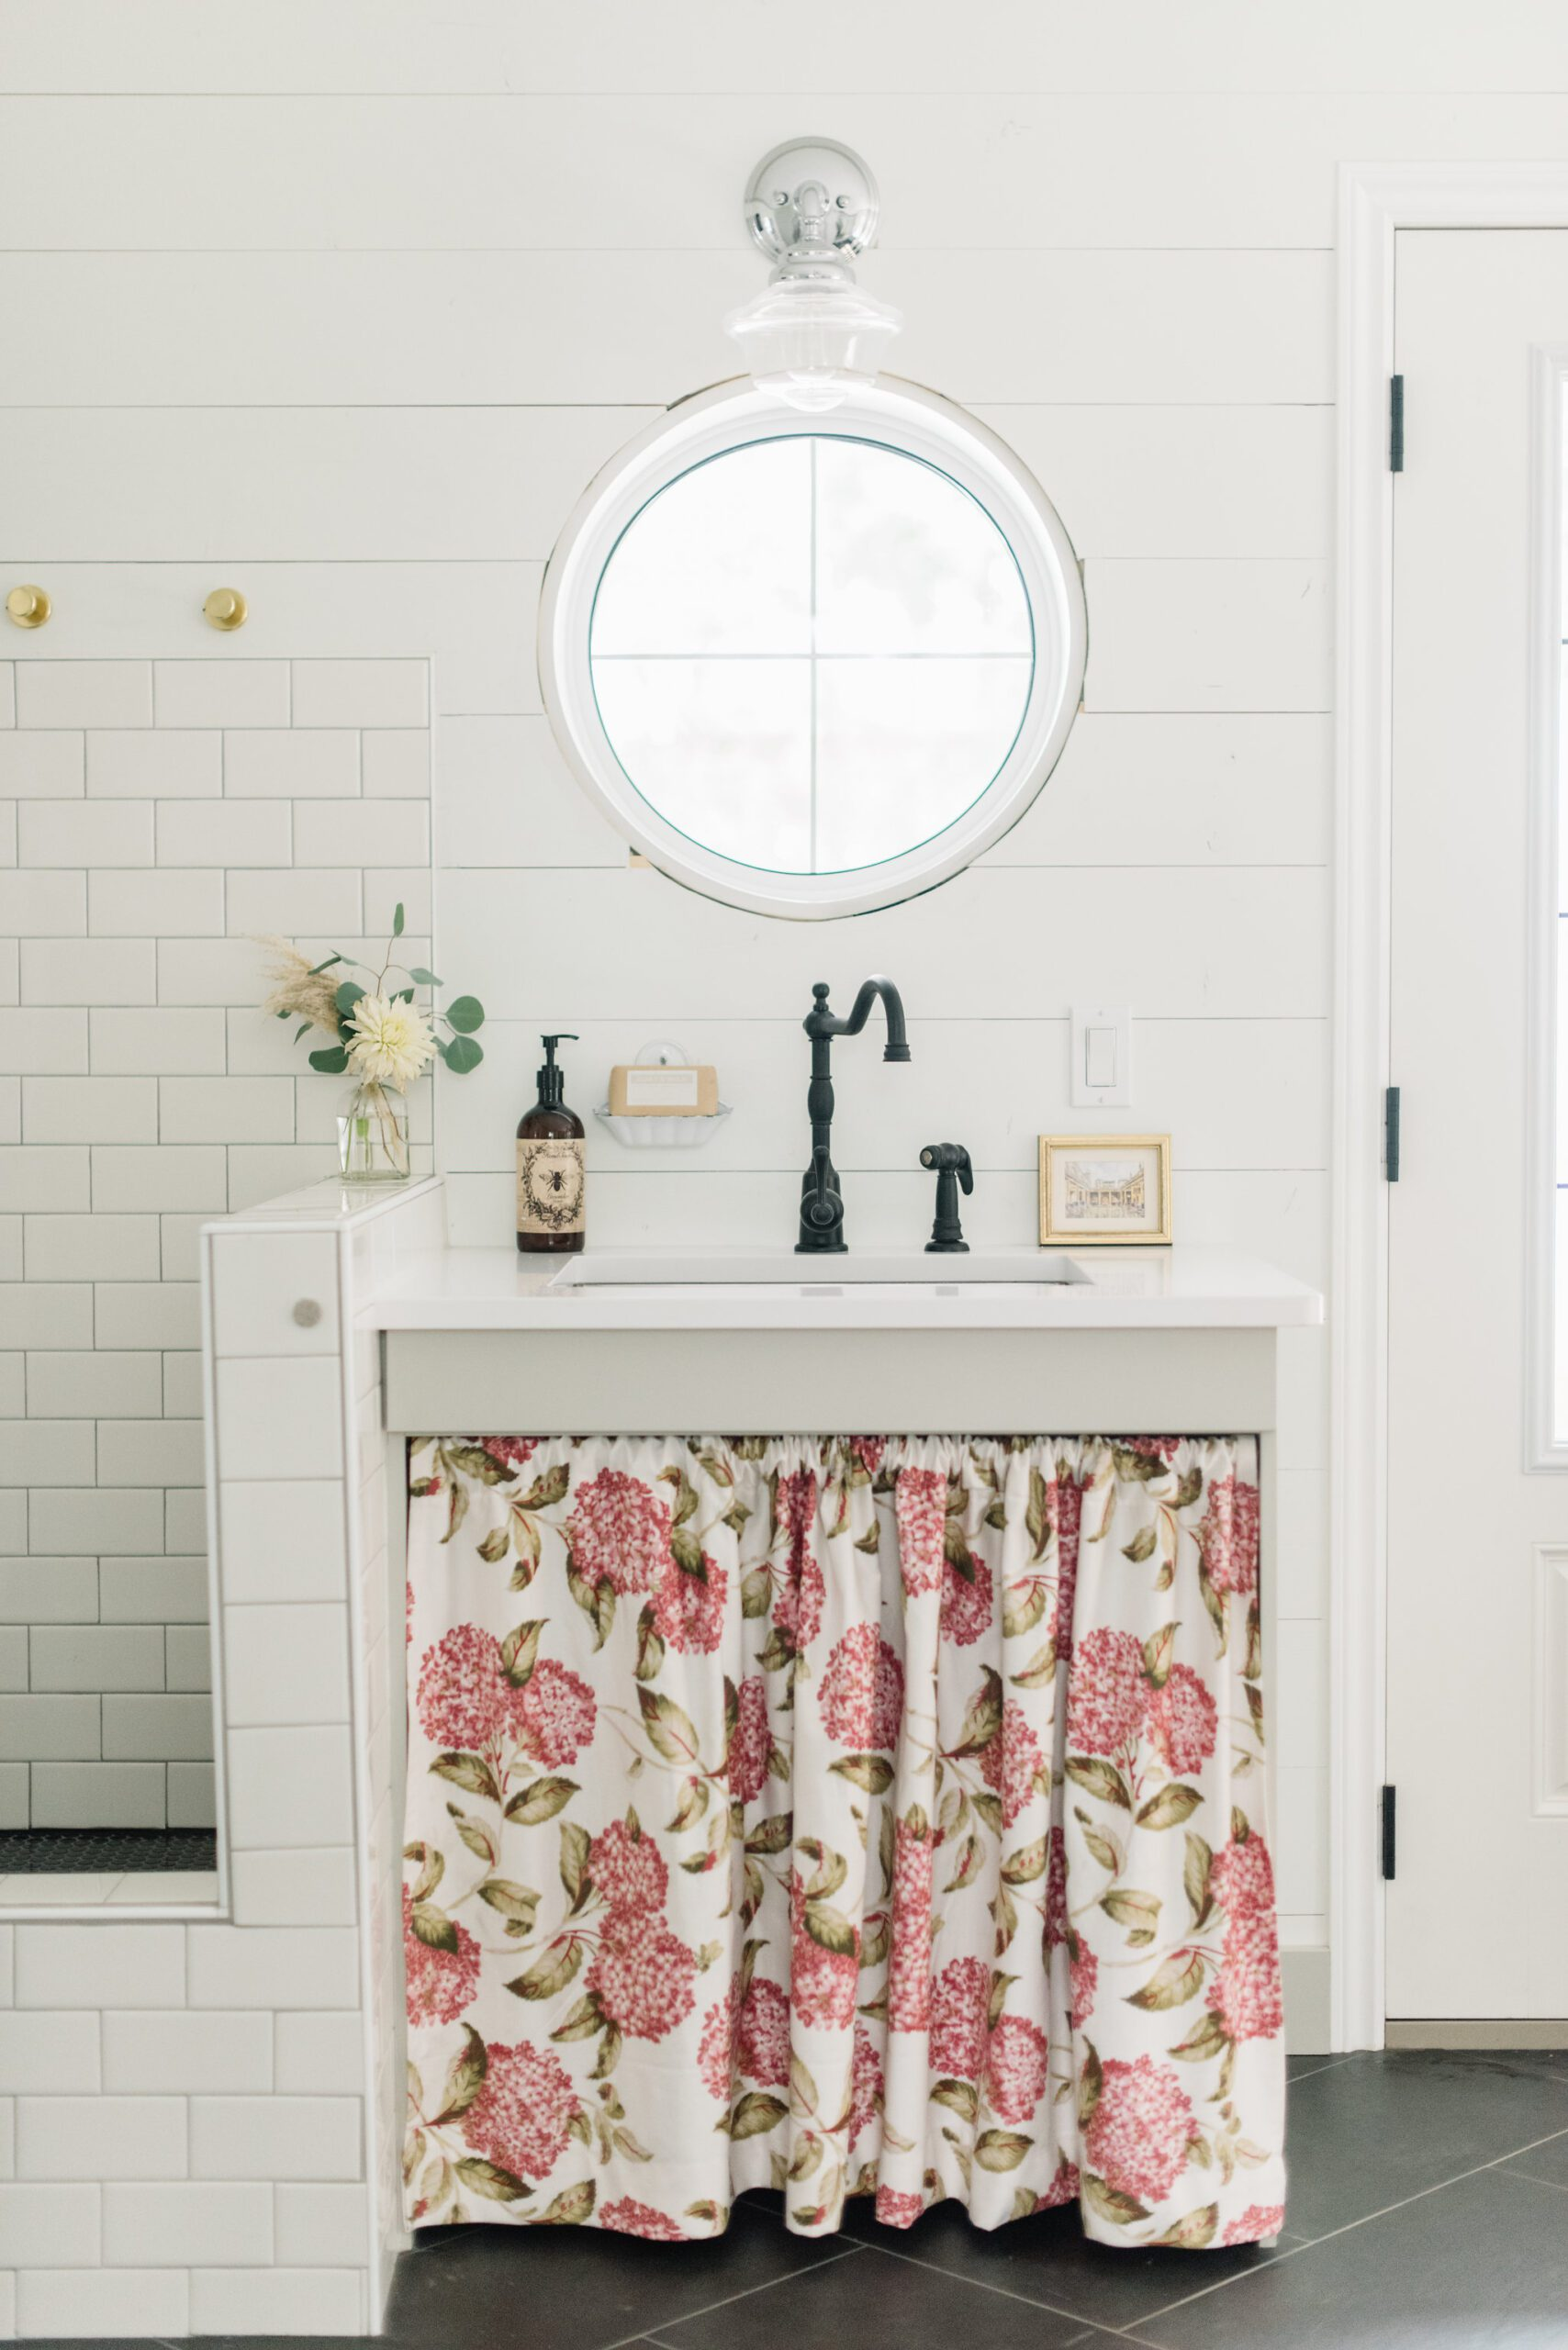 Sink and bootwash in the mudroom at The Ginger Home